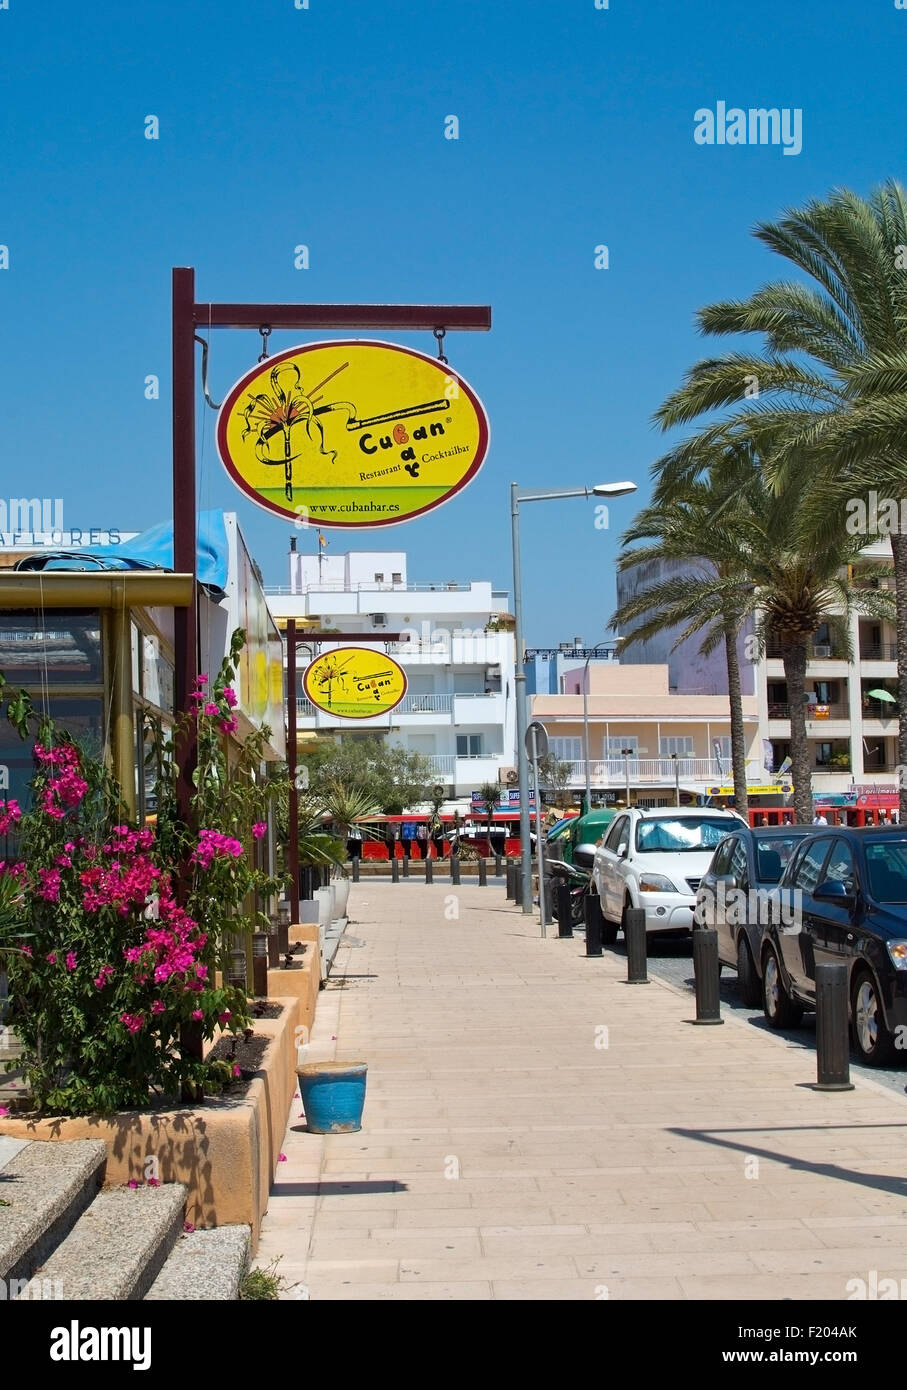 Cuban Bar sign in Can Pastilla on a sunny summer day on July 27, 2015 in Mallorca, Balearic islands, Spain. - Stock Image